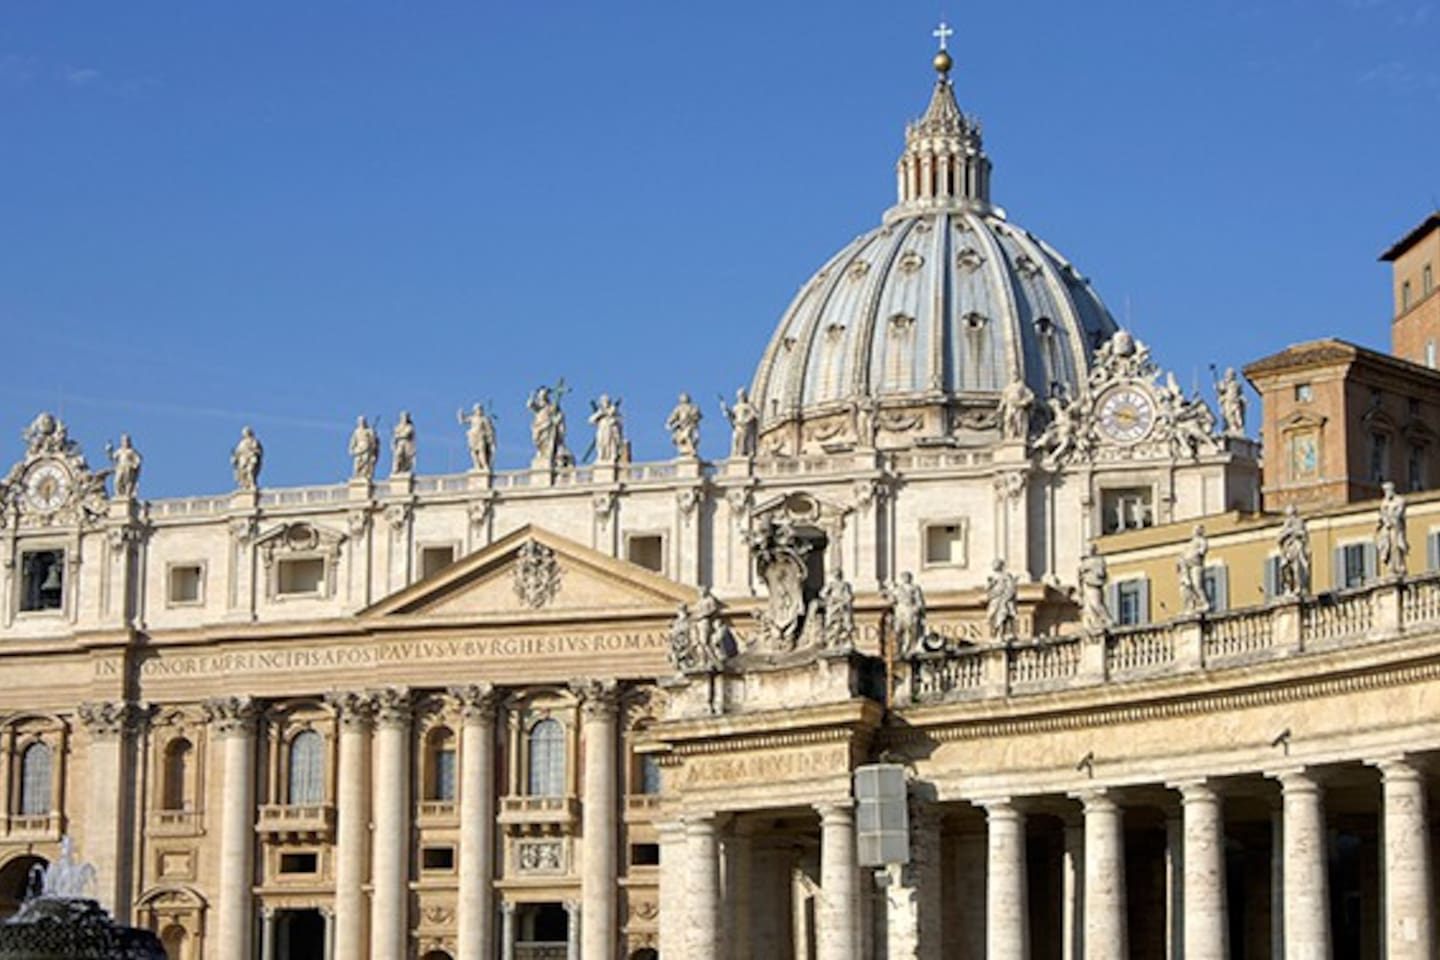 Amazing sunny apartment in Vatican!!! It is situated right in the heart of this religious capital of the world! You don't need any public transport to get to this amazing historical place as you will stay right here! Fully equipped apartment with fantastic veiw to the city!!!